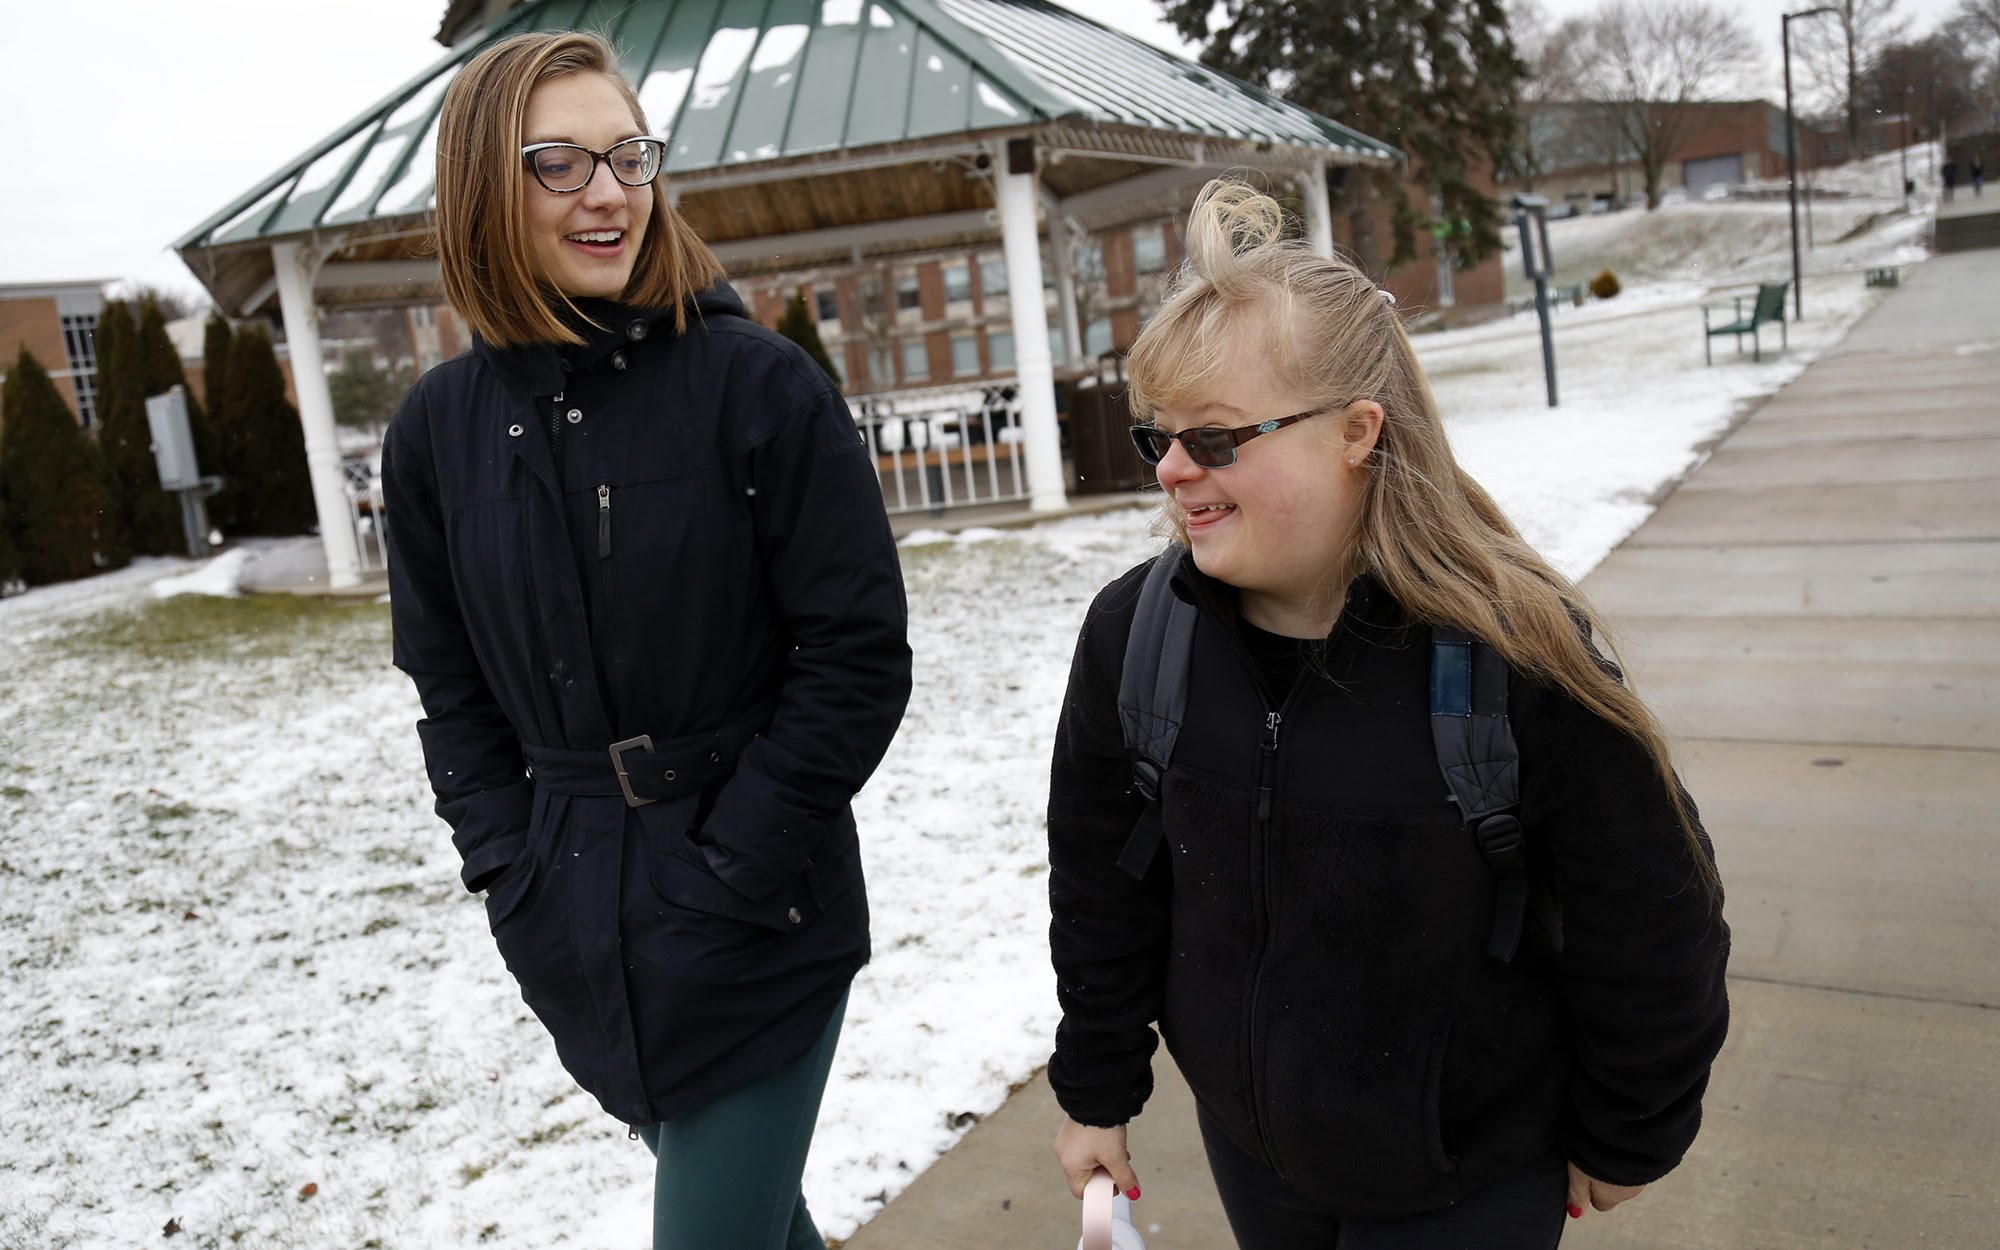 Emilia Hobbs, assistant coordinator for Slippery Rock University's Rock Life program, (left) talks with Nicolette Fenello, a 21-year-old second-year student at the university, as they walk across campus on Jan. 25, 2018. (Photo by Ryan Loew/PublicSource)